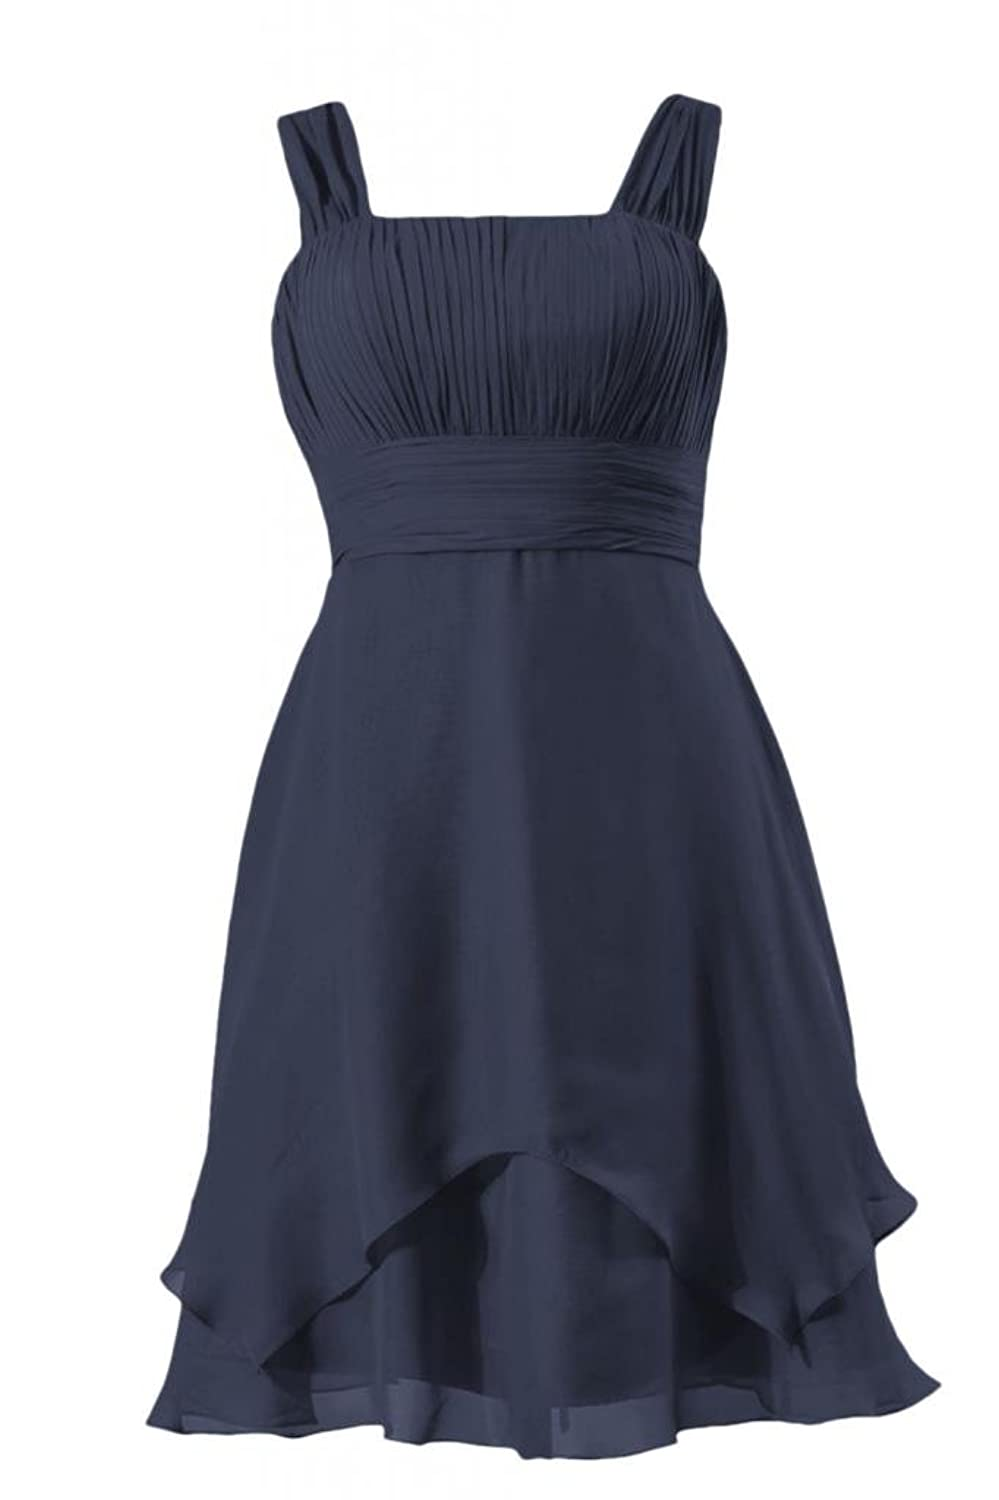 DaisyFormals Cocktail Dress Knee Length Bridesmaid Dress W/Flowing Layers(BM912)